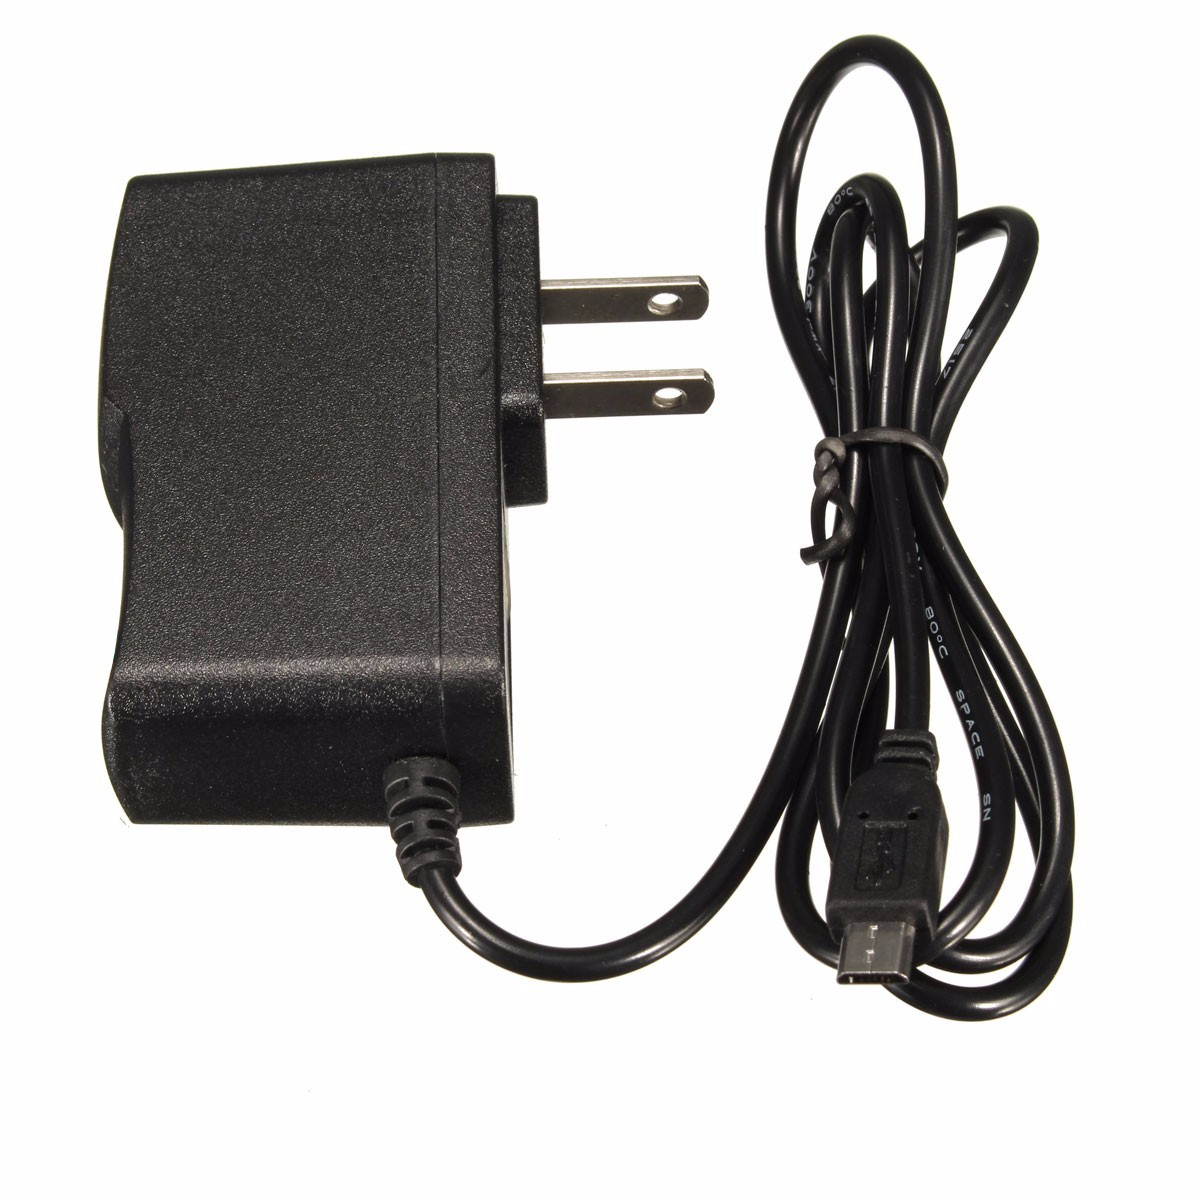 Newest 5V DC 2A design Micro USB Charger Adapter Cable Power Supply for Raspberry Pi B+ B USA Plug